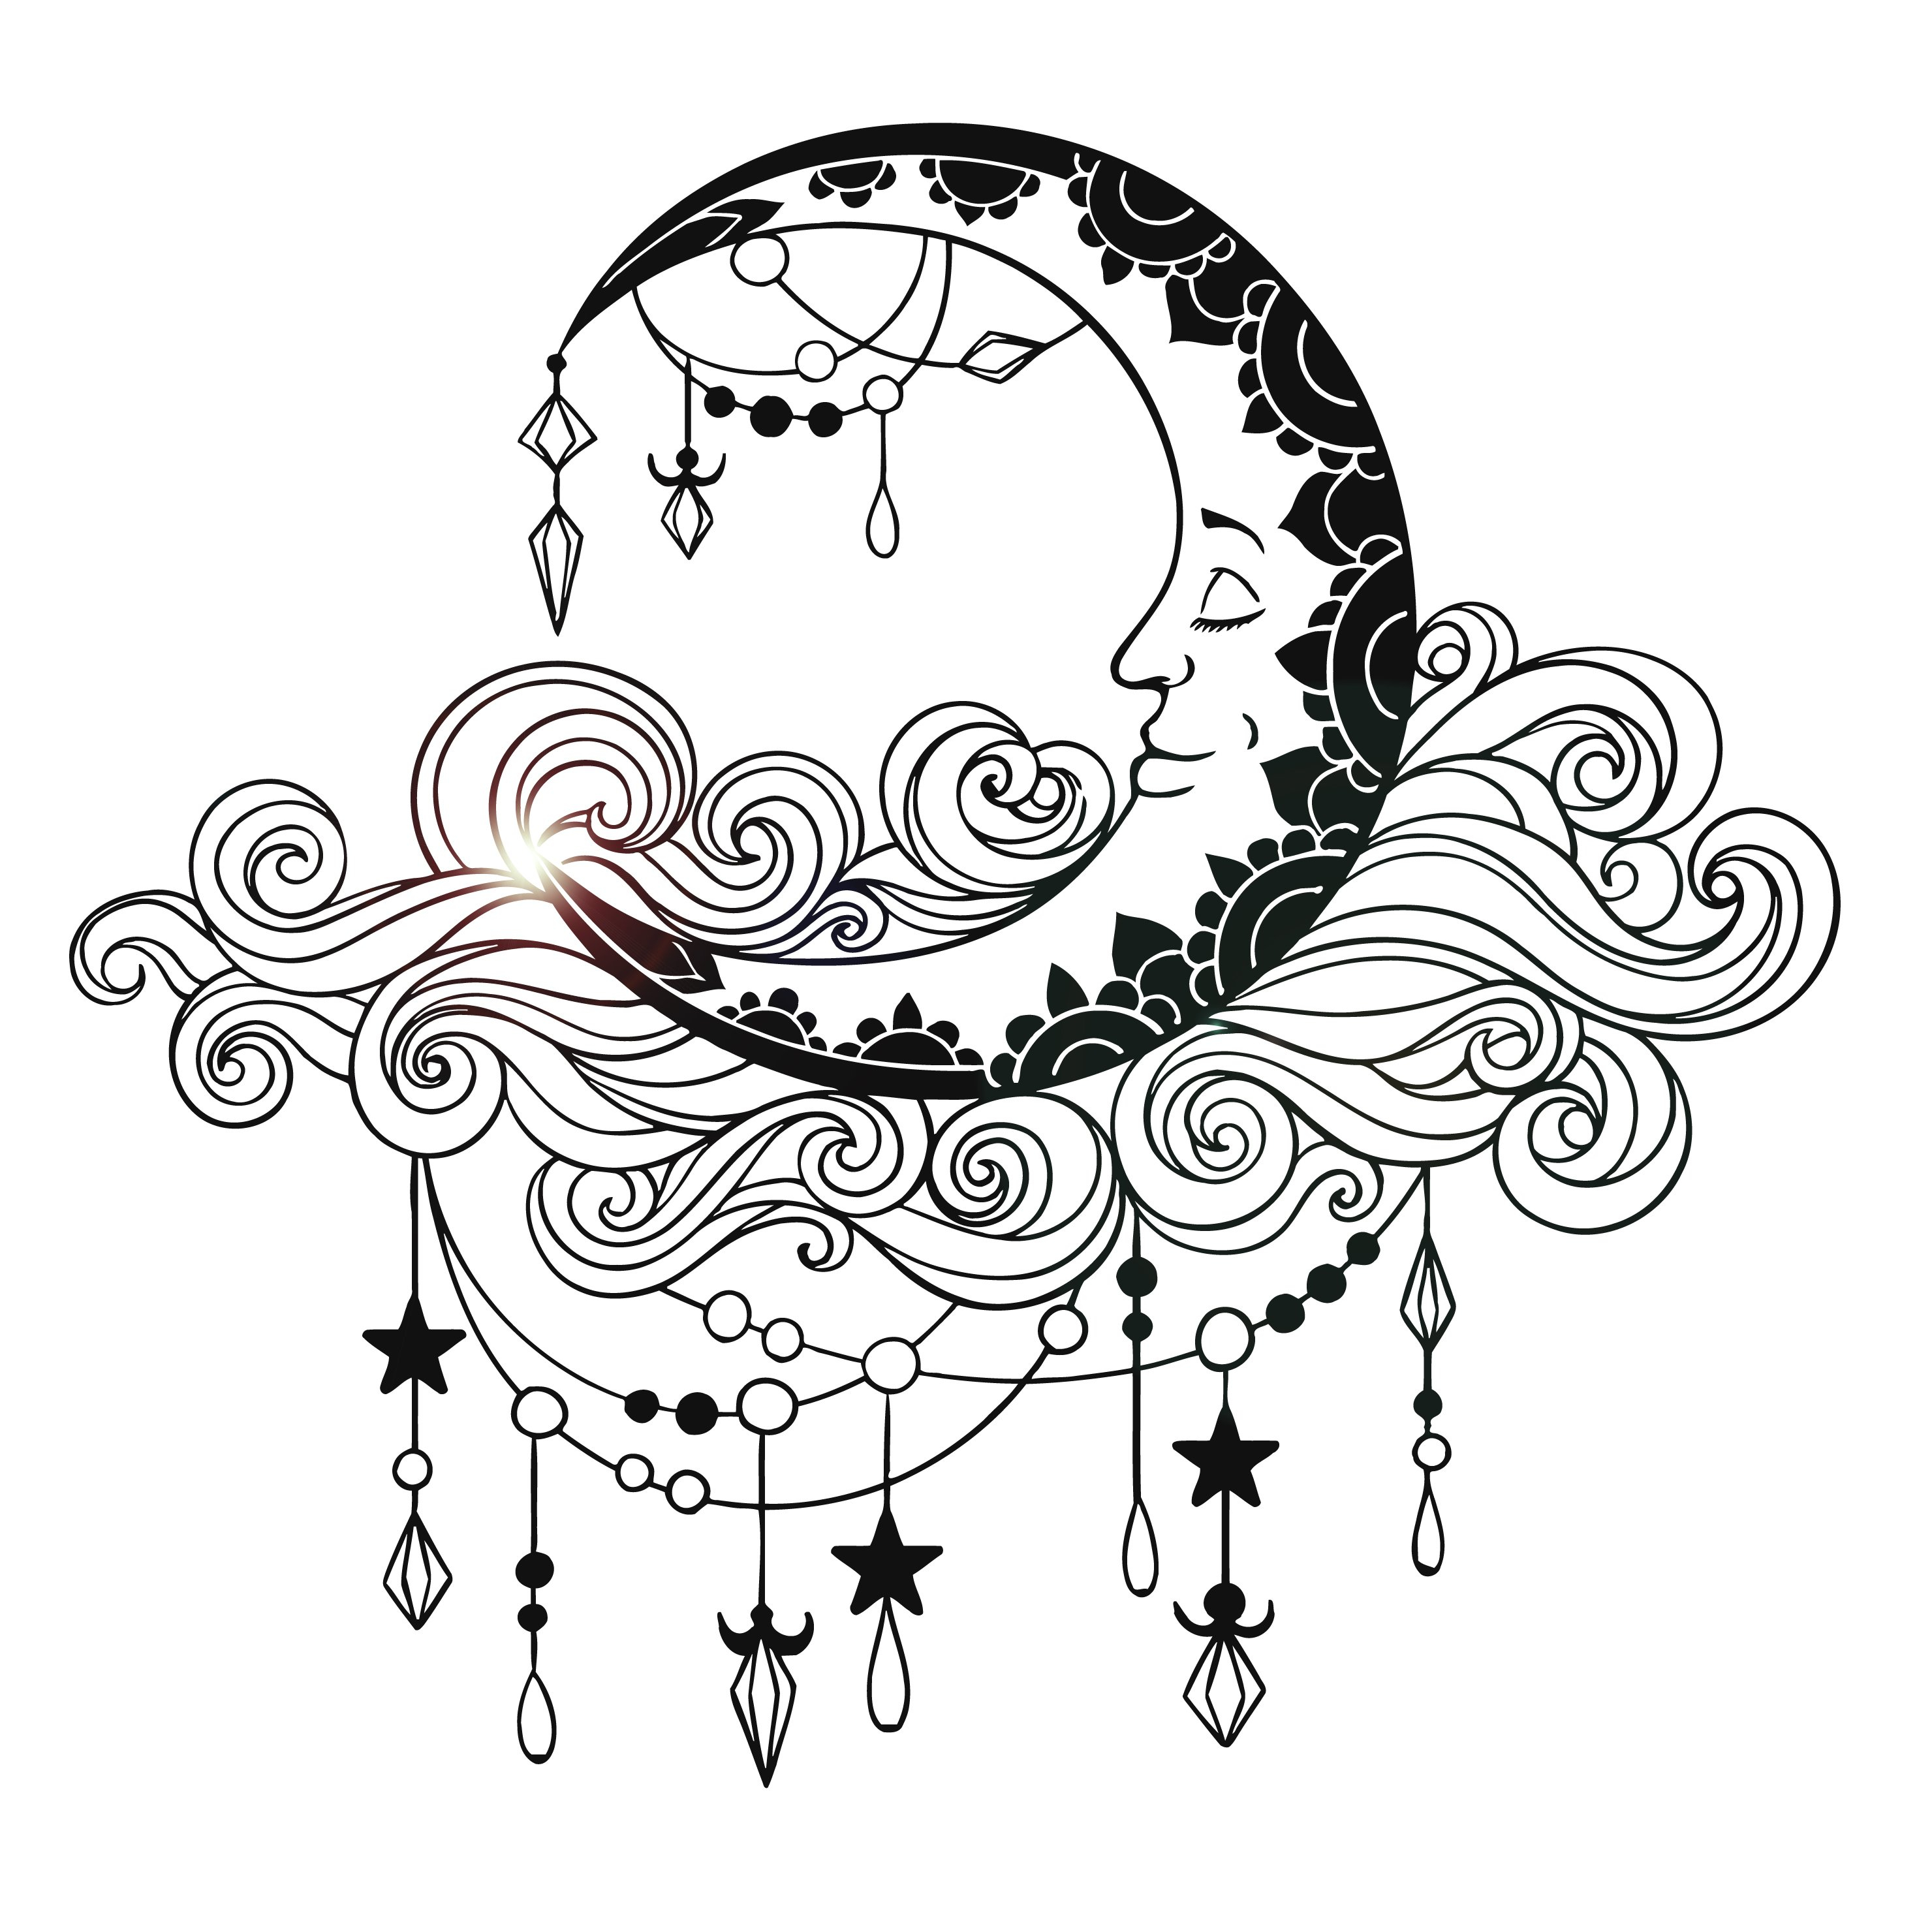 Image of Vinyl Wall Decal Moon Clouds Bedroom Decor Stickers Mural Unique Gift (ig3694)